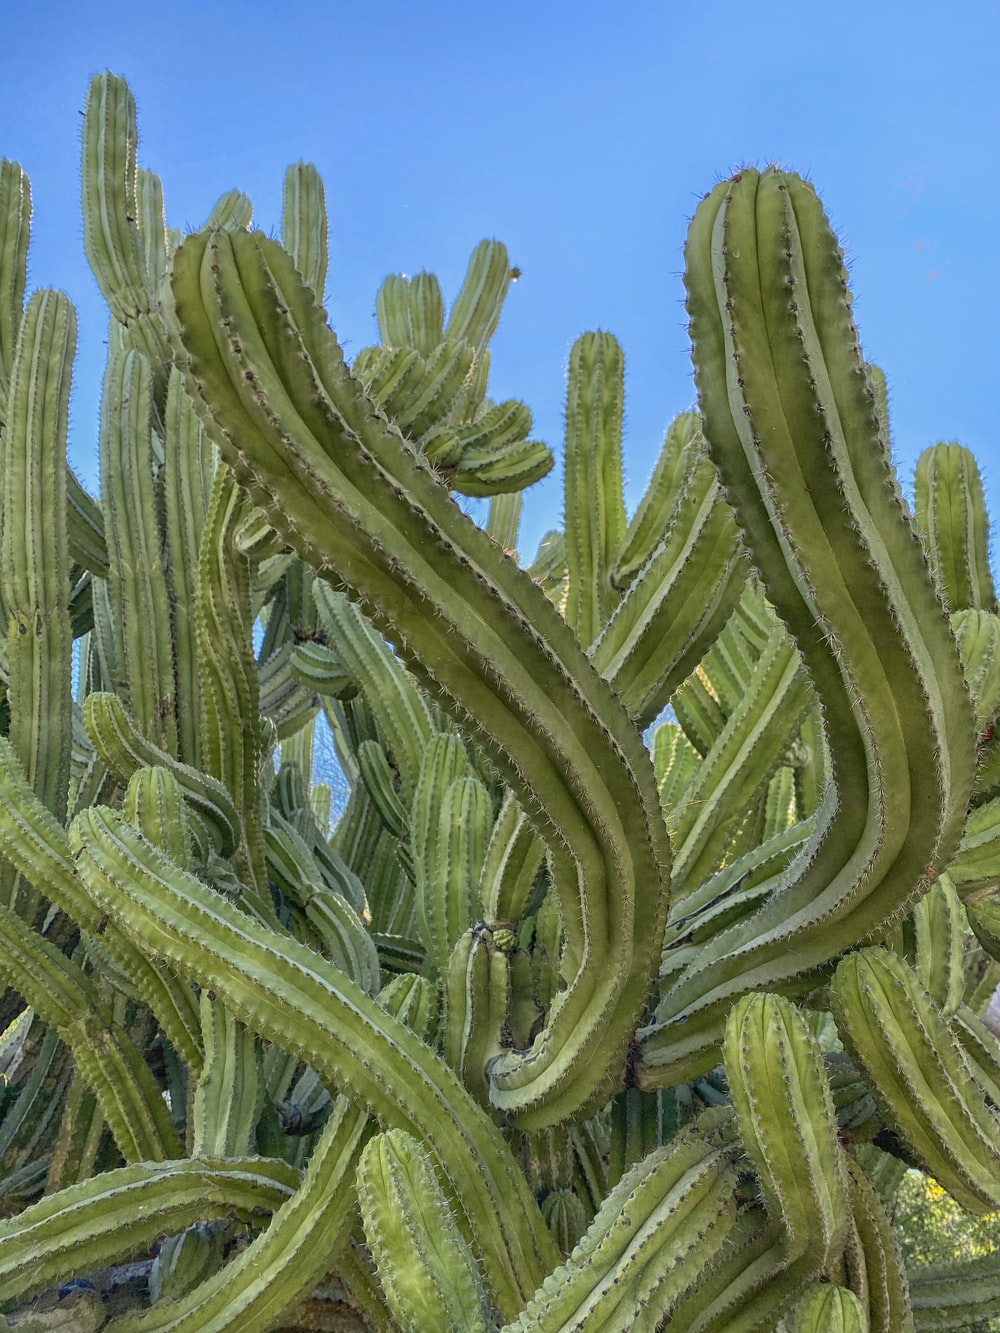 green cactus under blue sky during daytime